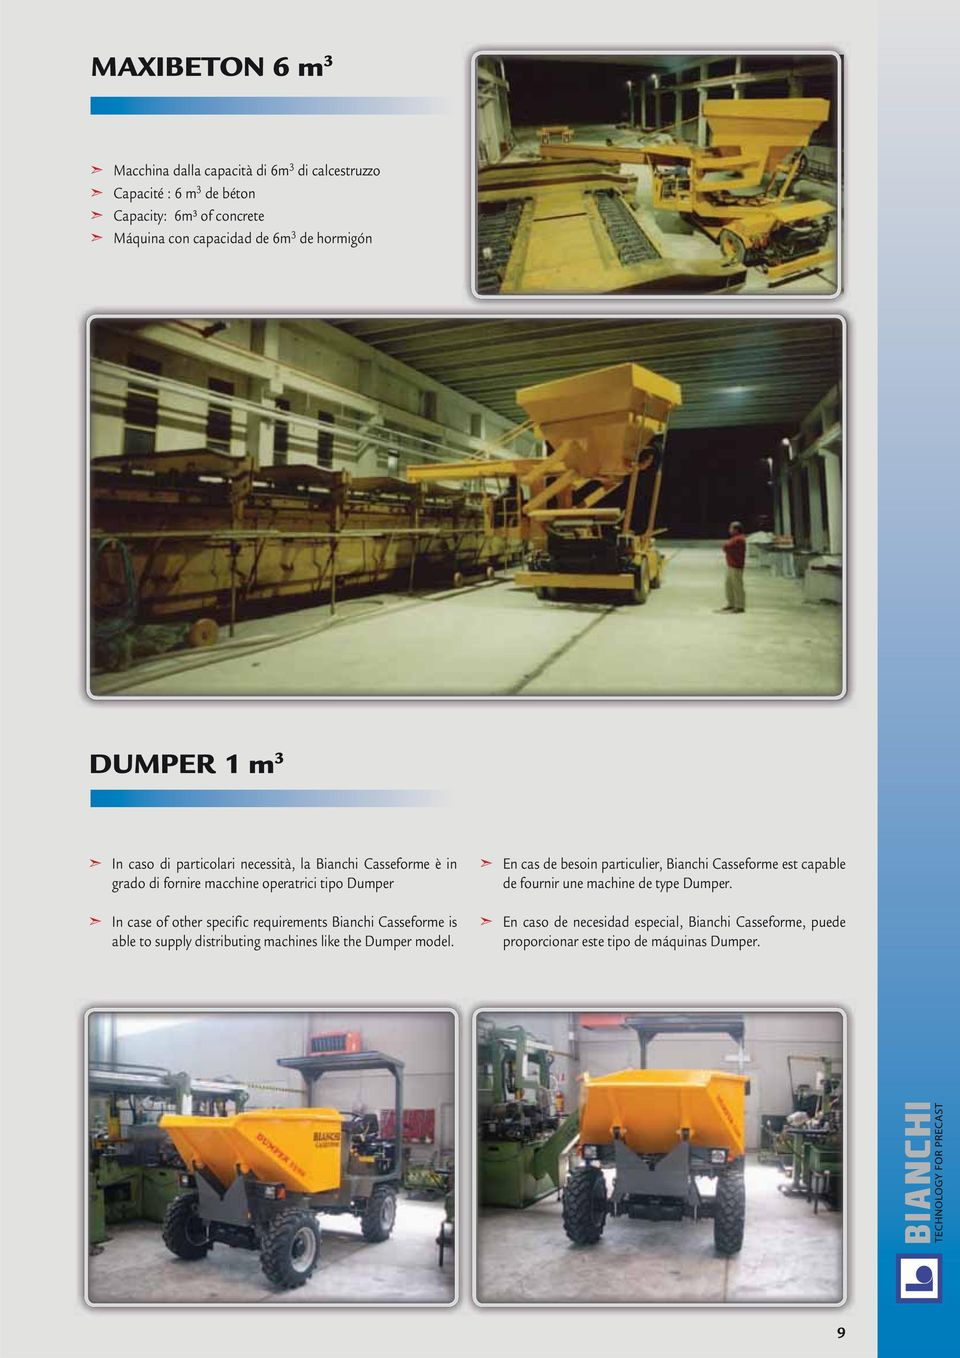 specific requirements Bianchi Casseforme is able to supply distributing machines like the Dumper model.